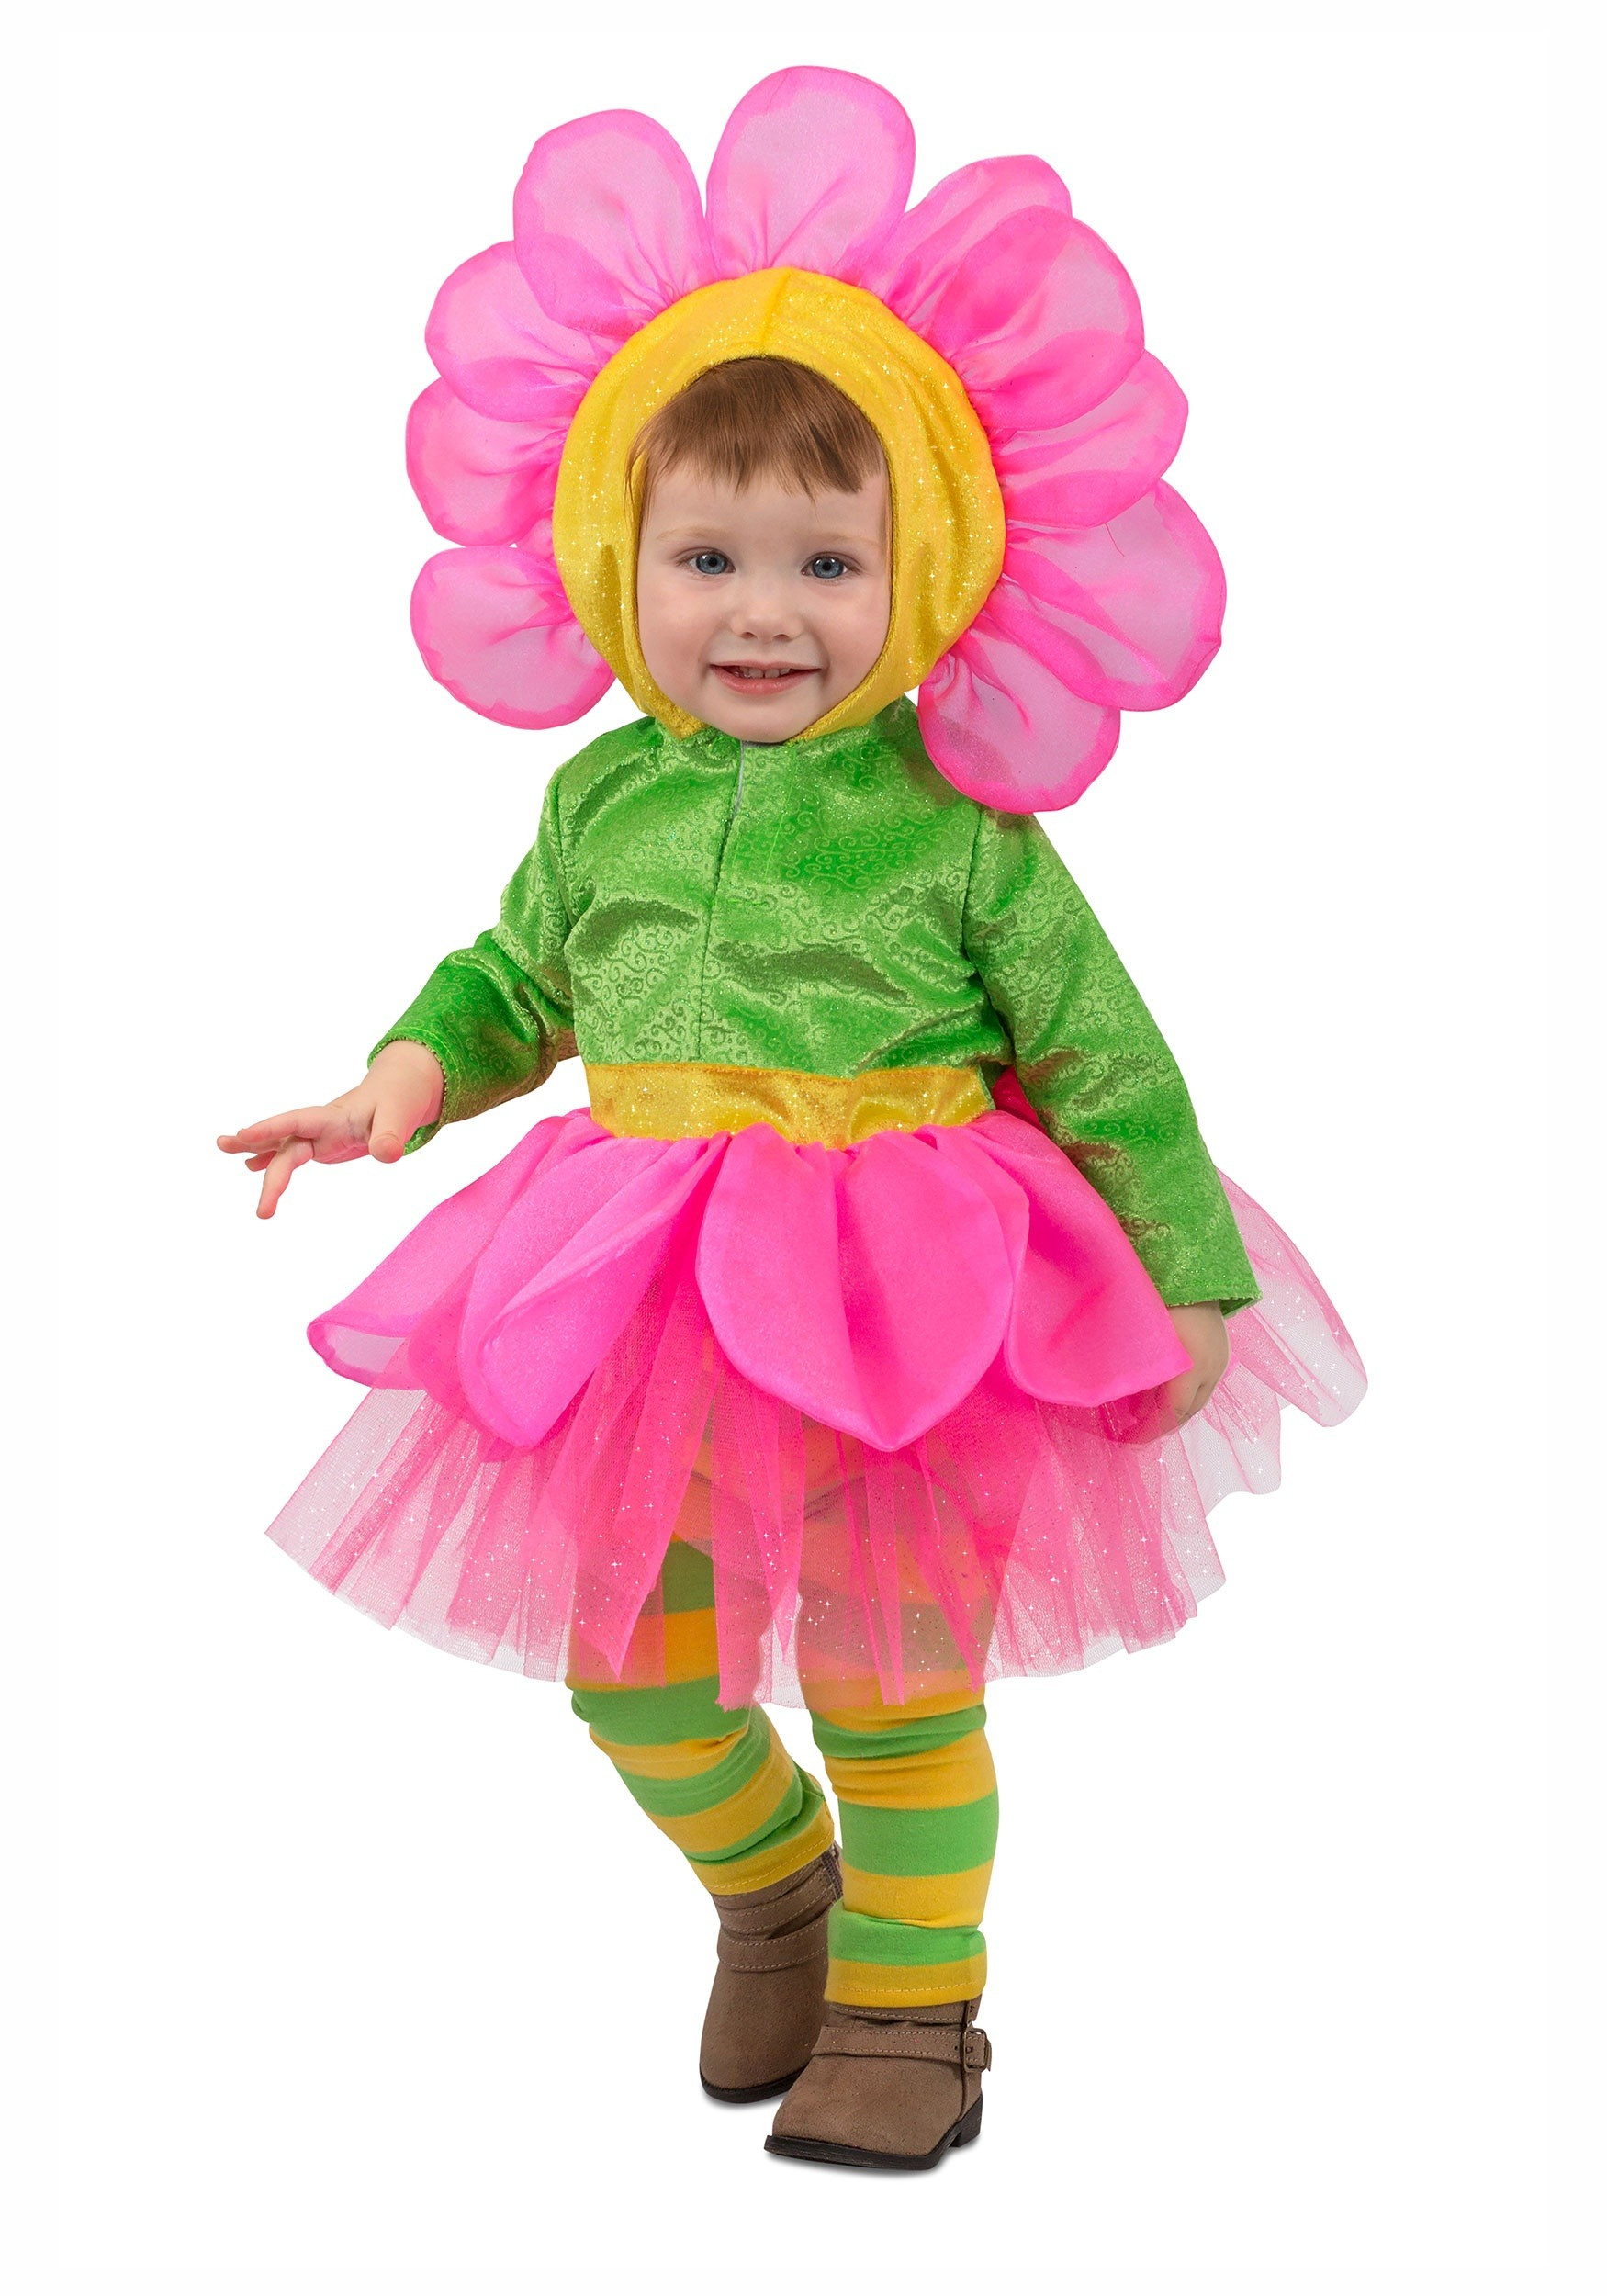 Baby Flower Halloween Costumes  Girls Flower Costume for a Toddler